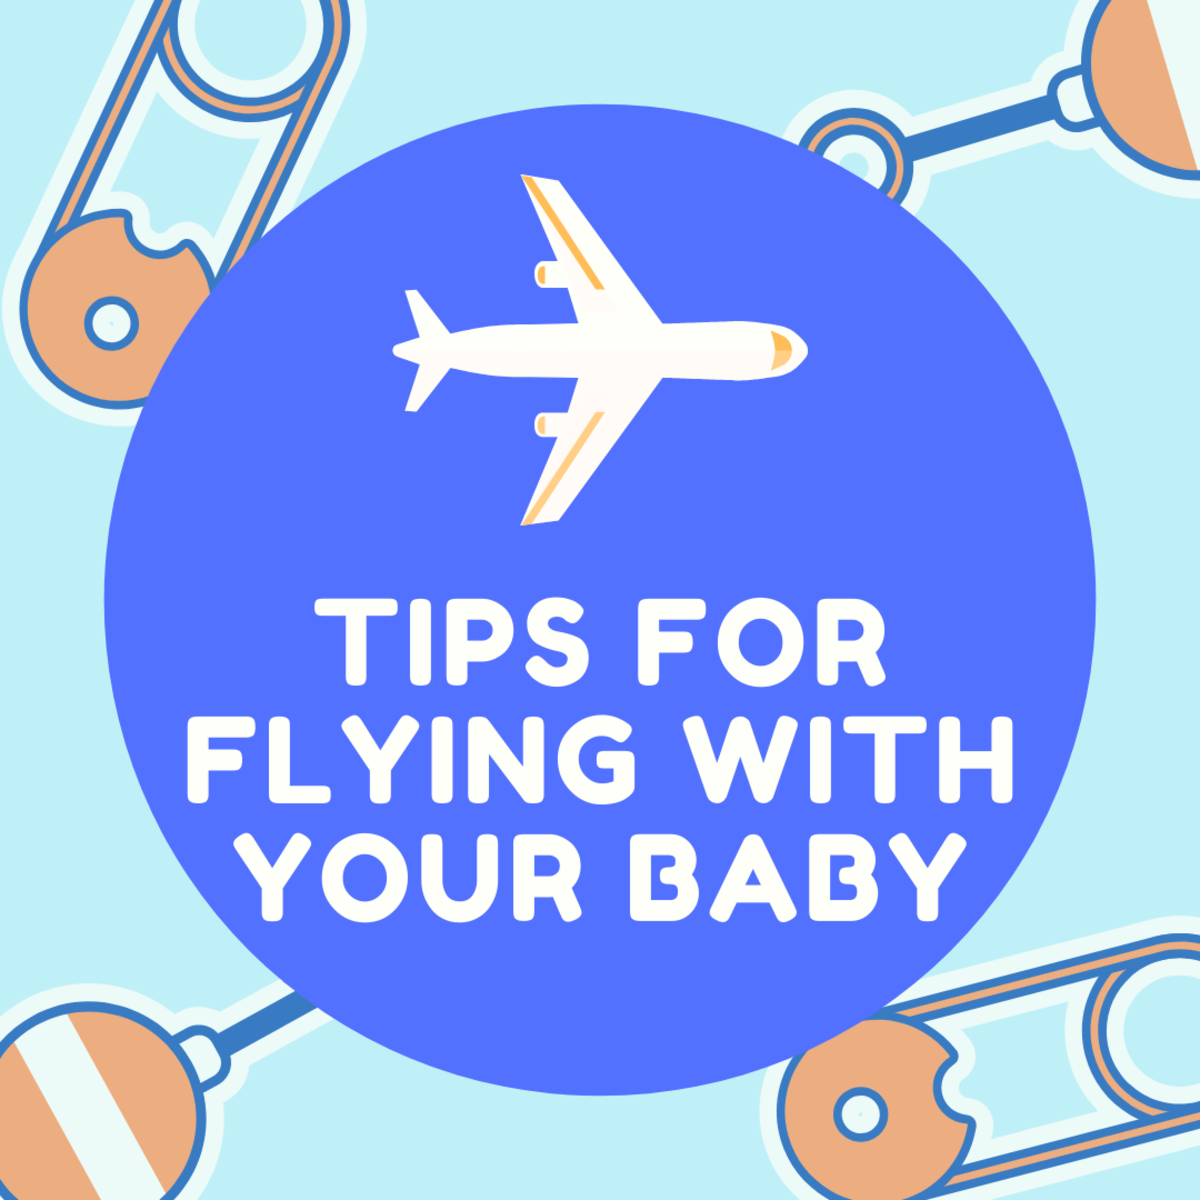 Flying with your baby doesn't have to be a hassle. These helpful tips will guide you through what to do throughout the entire process, from take-off to touchdown.